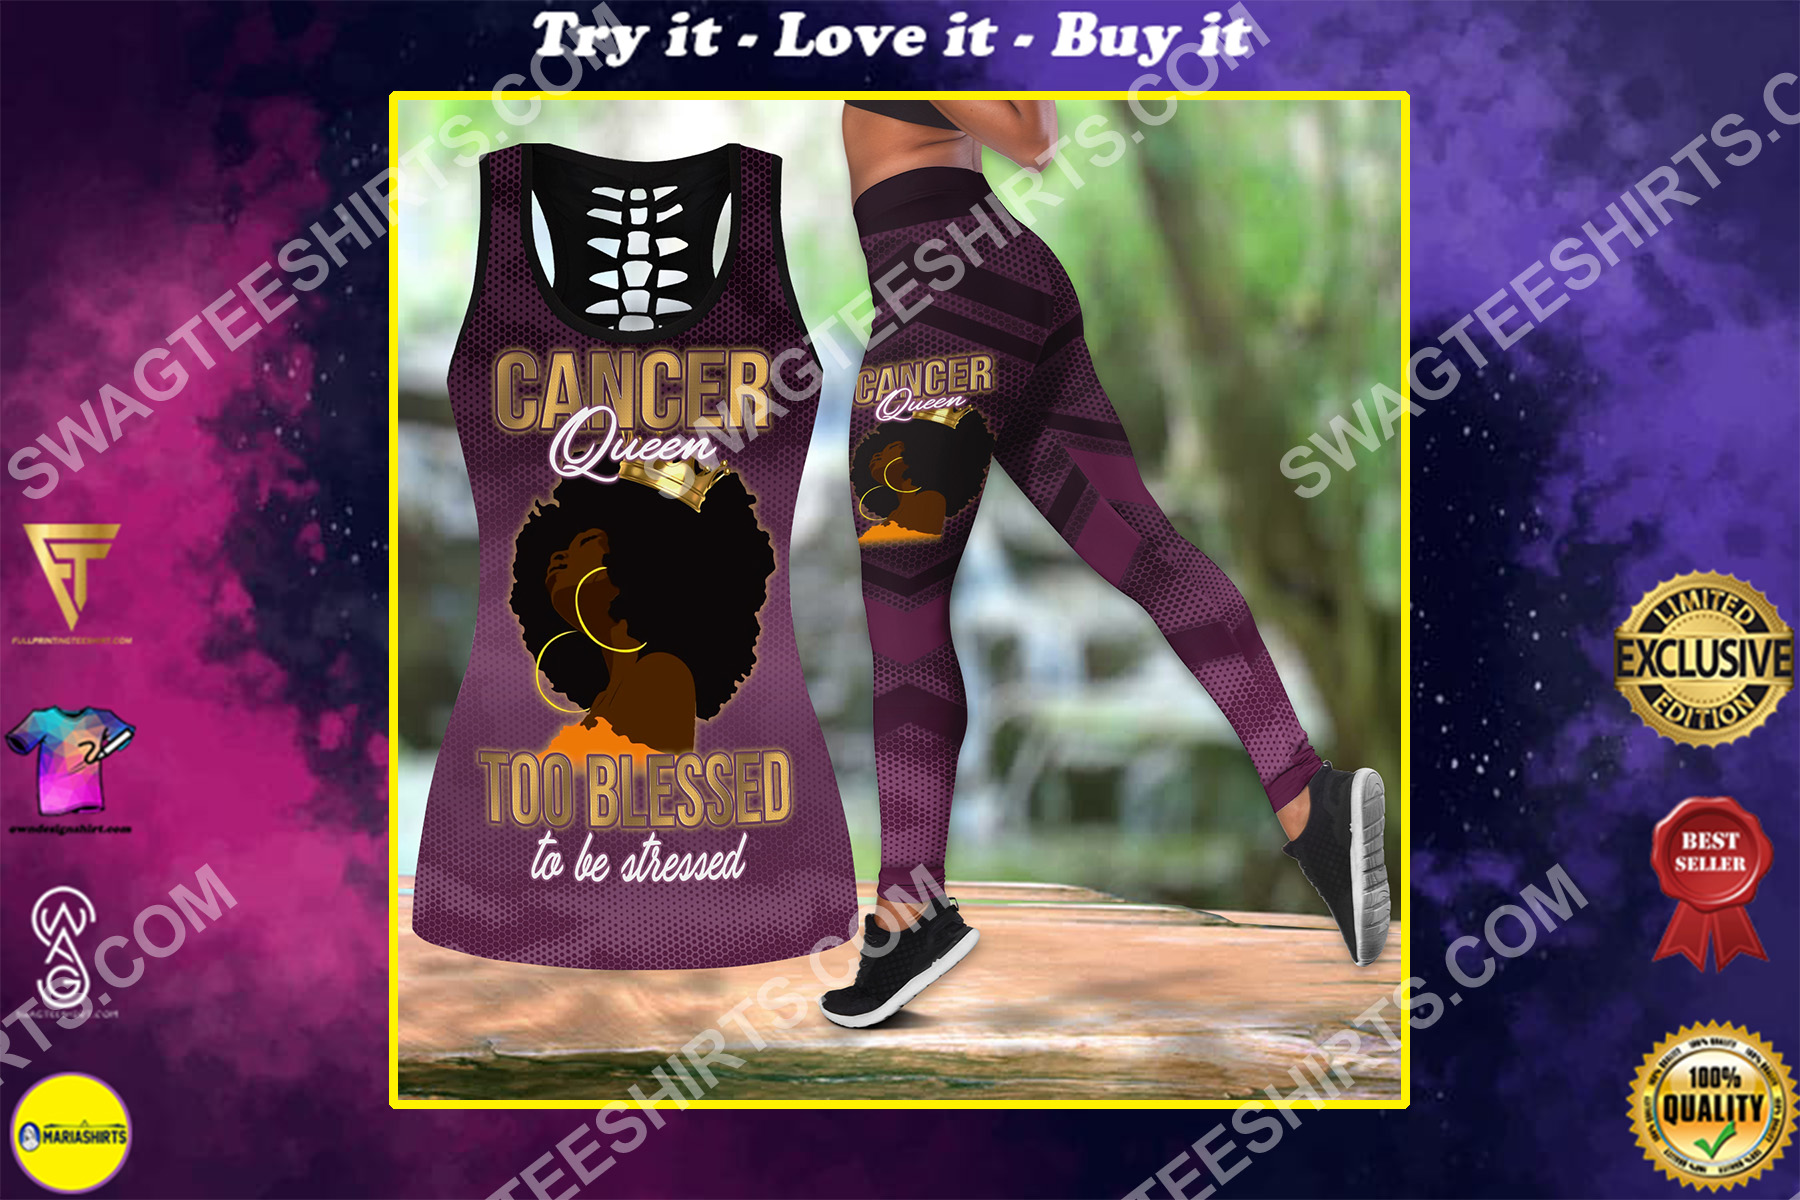 cancer queen too blessed to be stressed birthday gift set sports outfit